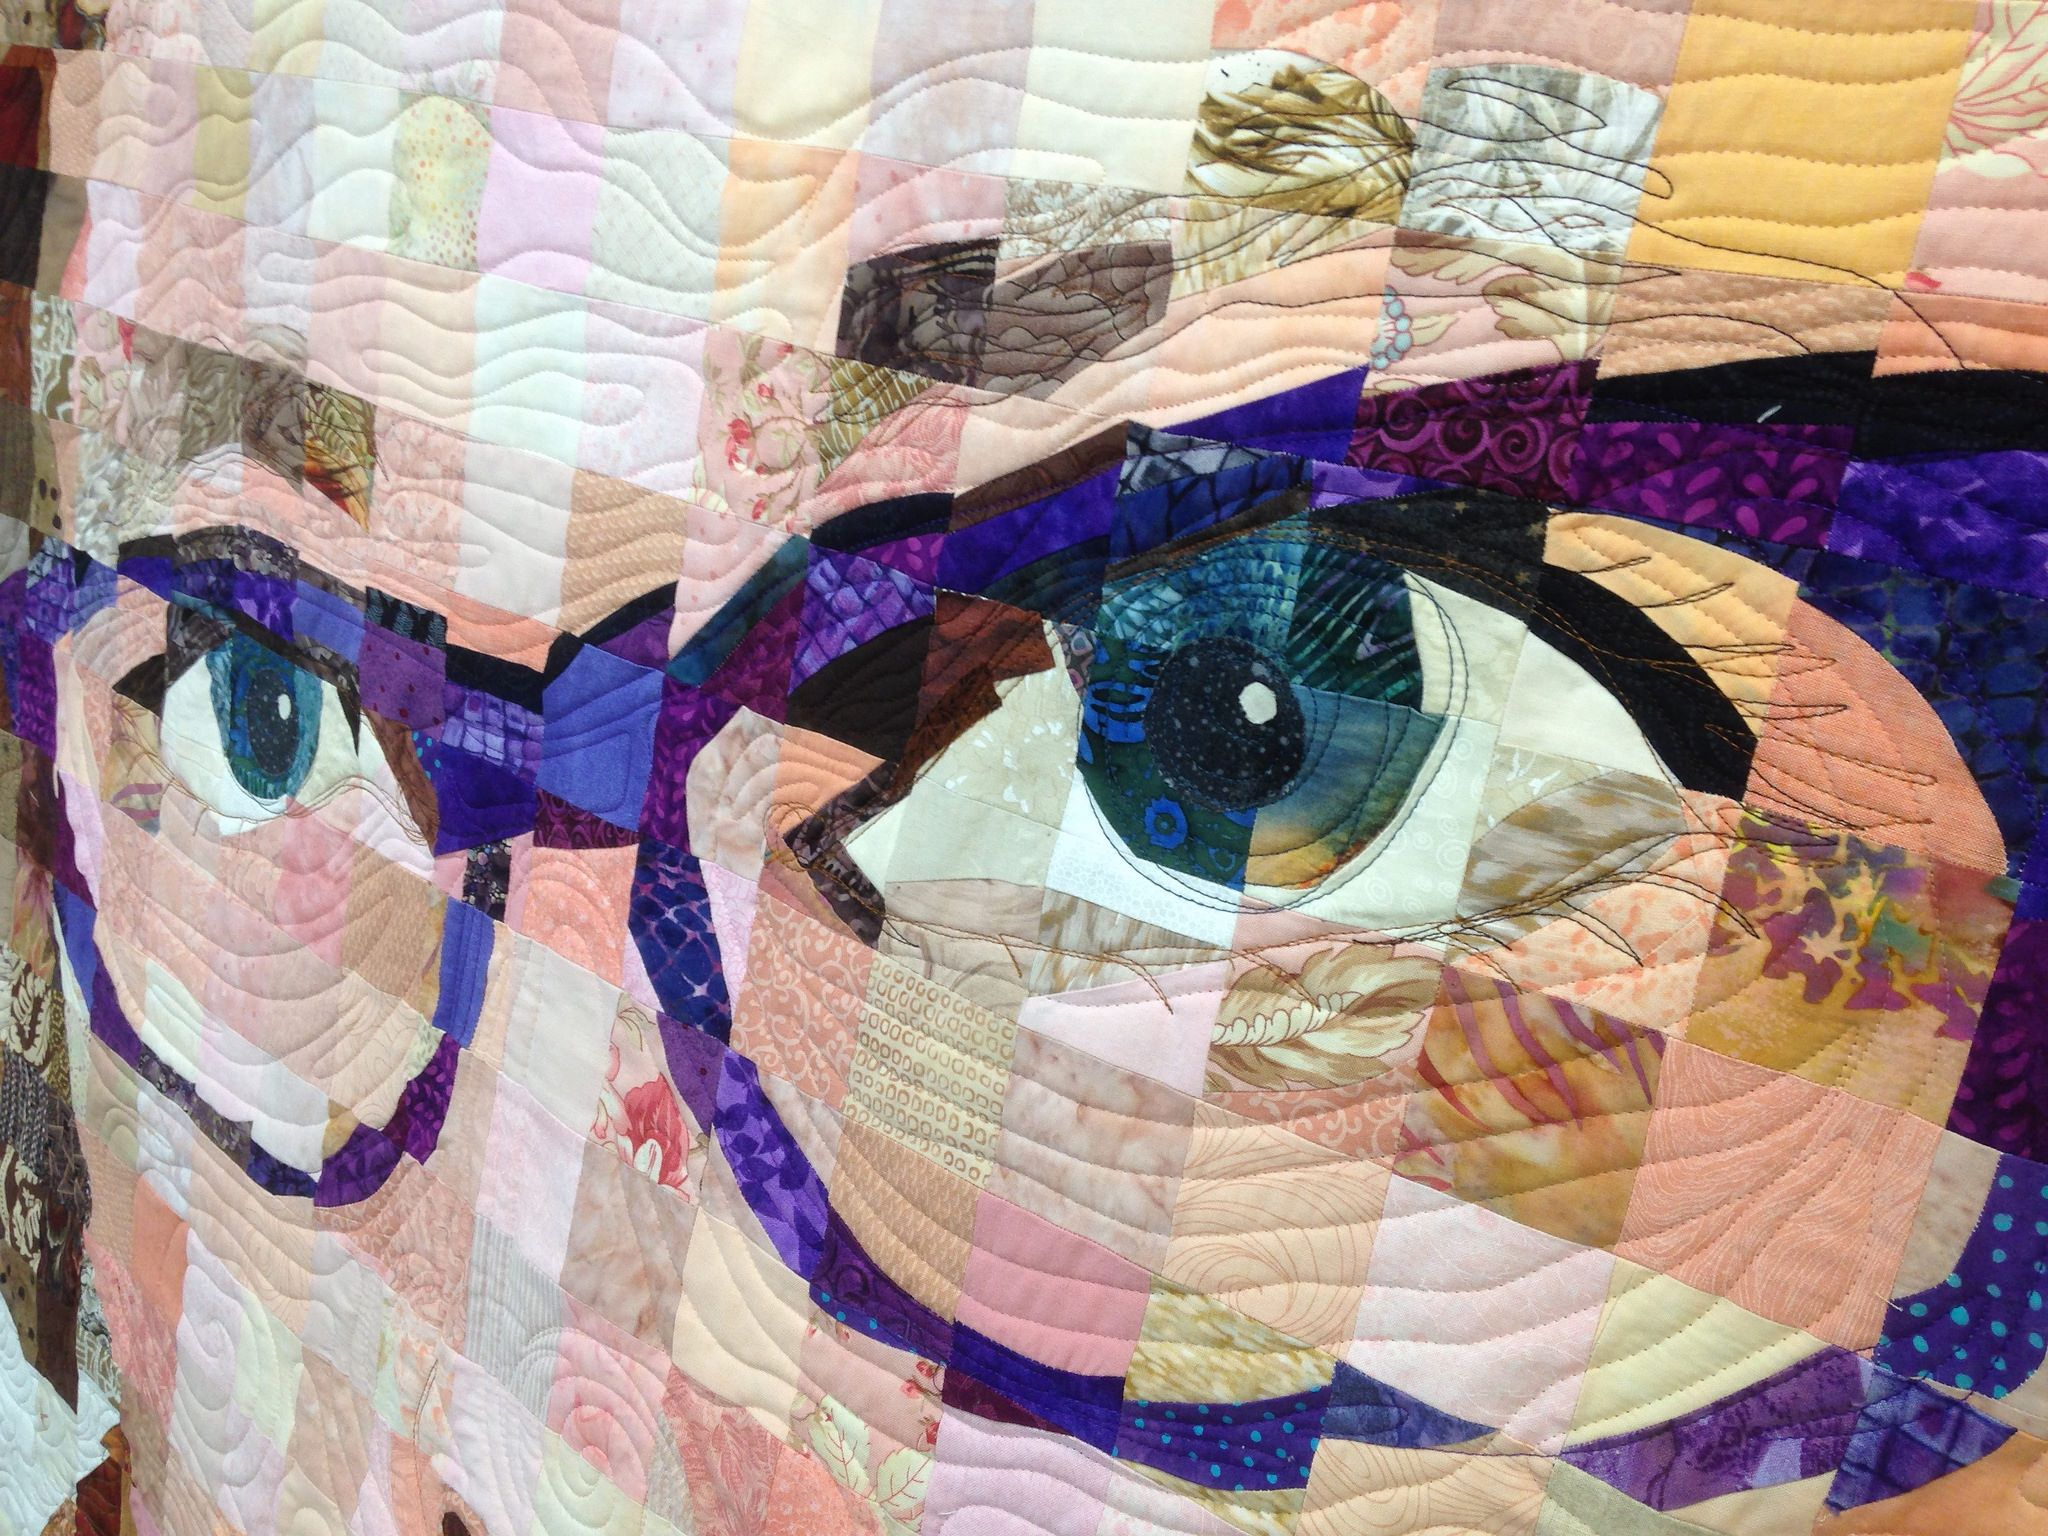 https://flic.kr/p/yPTbzv | Closeup of Robin's Self-portrait quilt